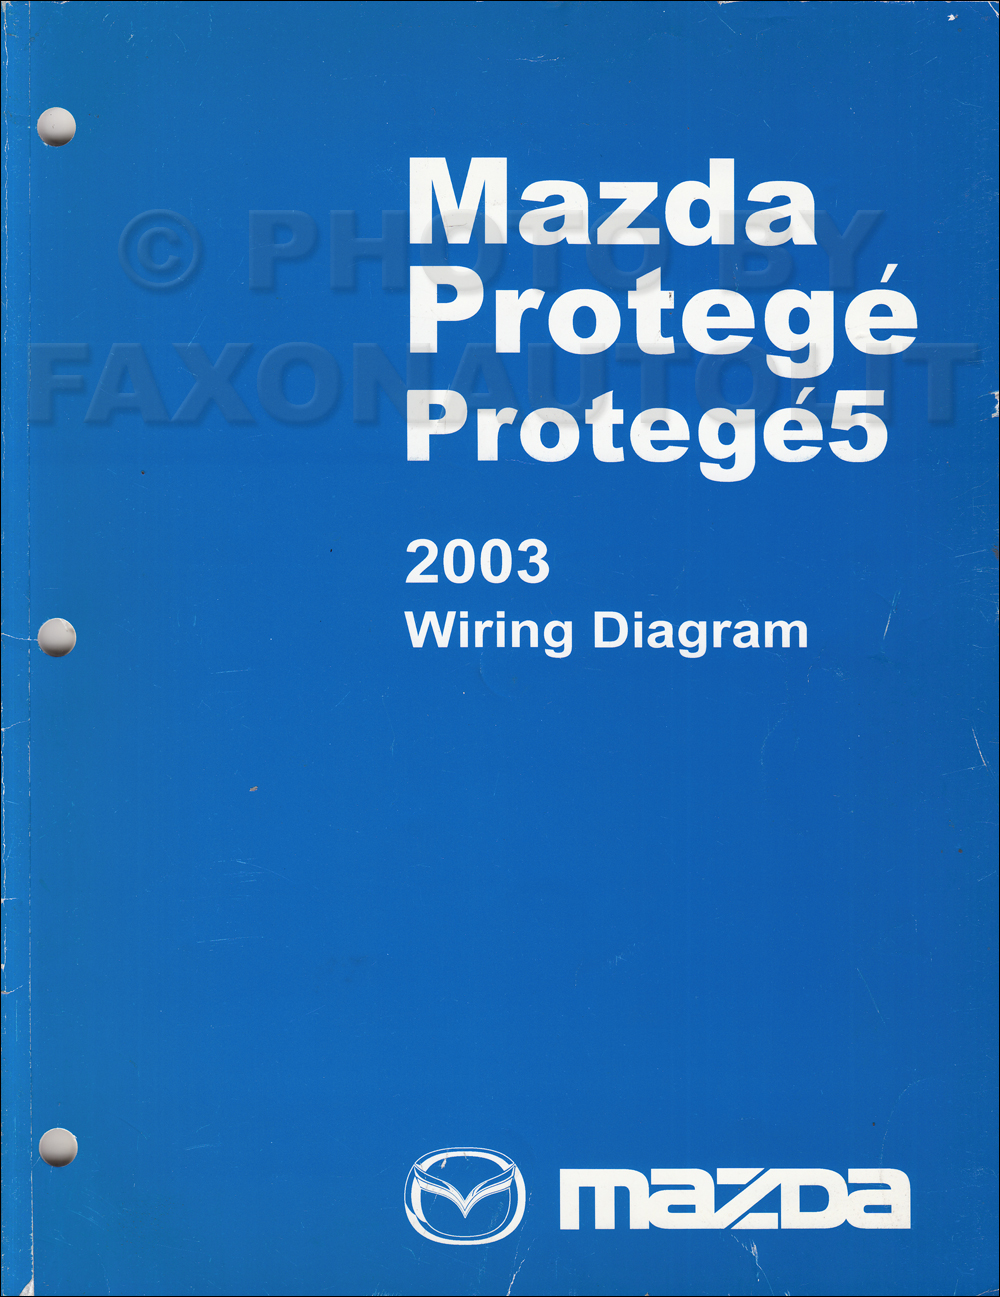 Wiring Diagram For 2003 Mazda Protege List Of Schematic Circuit Fuel System Moreover Electric Garage Heater And Protege5 Manual Original Rh Faxonautoliterature Com